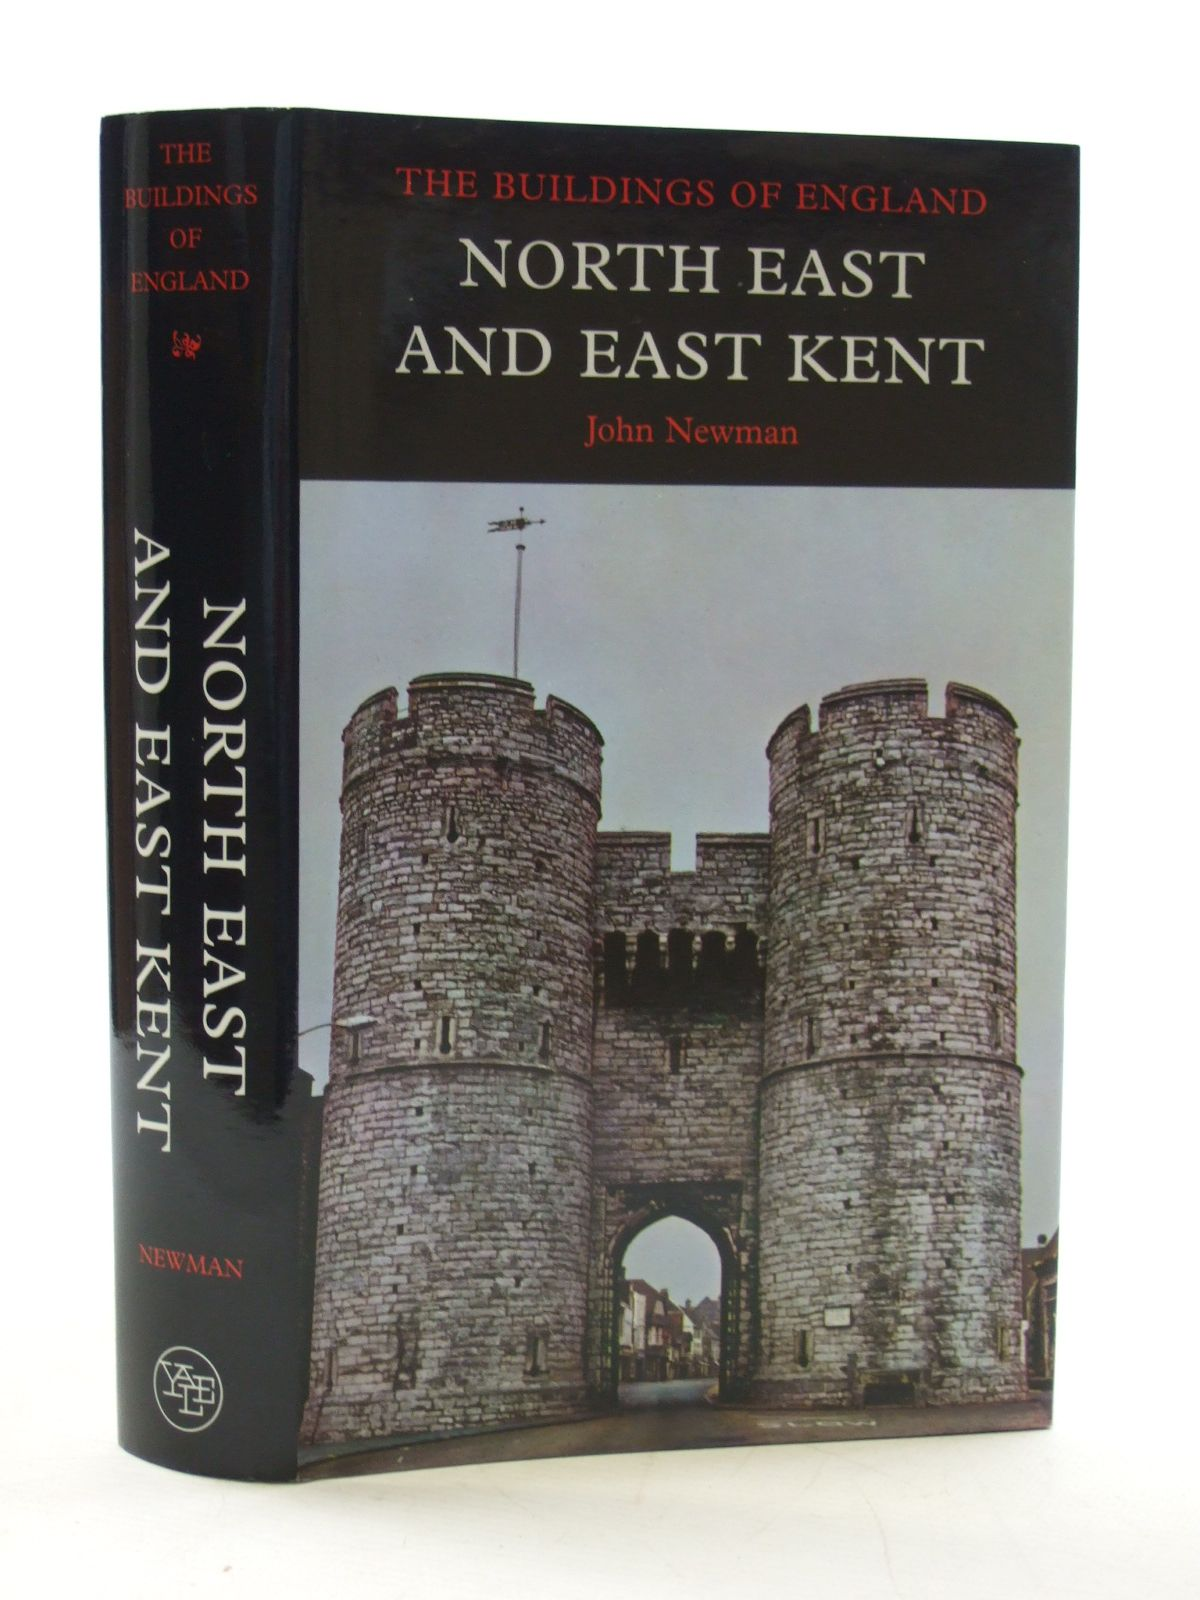 Photo of NORTH EAST AND EAST KENT (BUILDINGS OF ENGLAND) written by Newman, John published by Yale University Press (STOCK CODE: 1604537)  for sale by Stella & Rose's Books